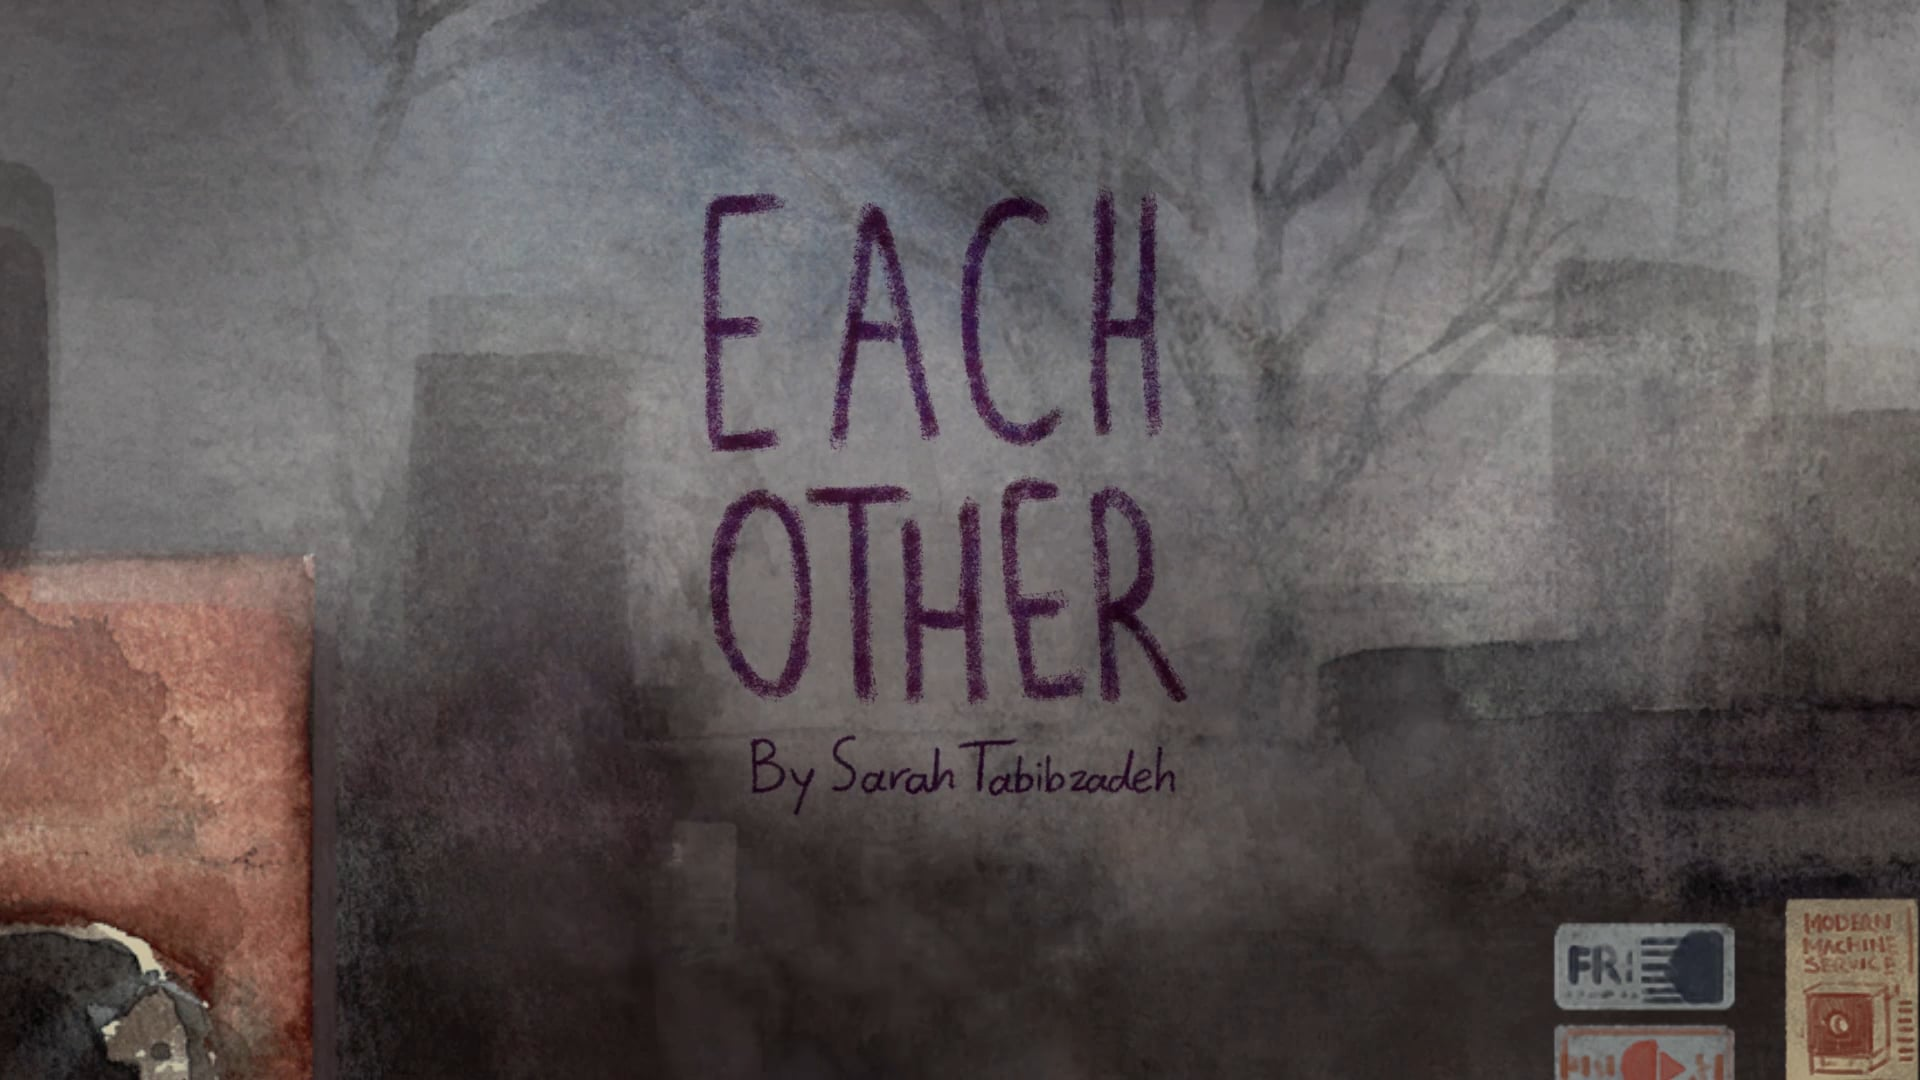 Each Other by Sarah Tabibzadeh  Iran